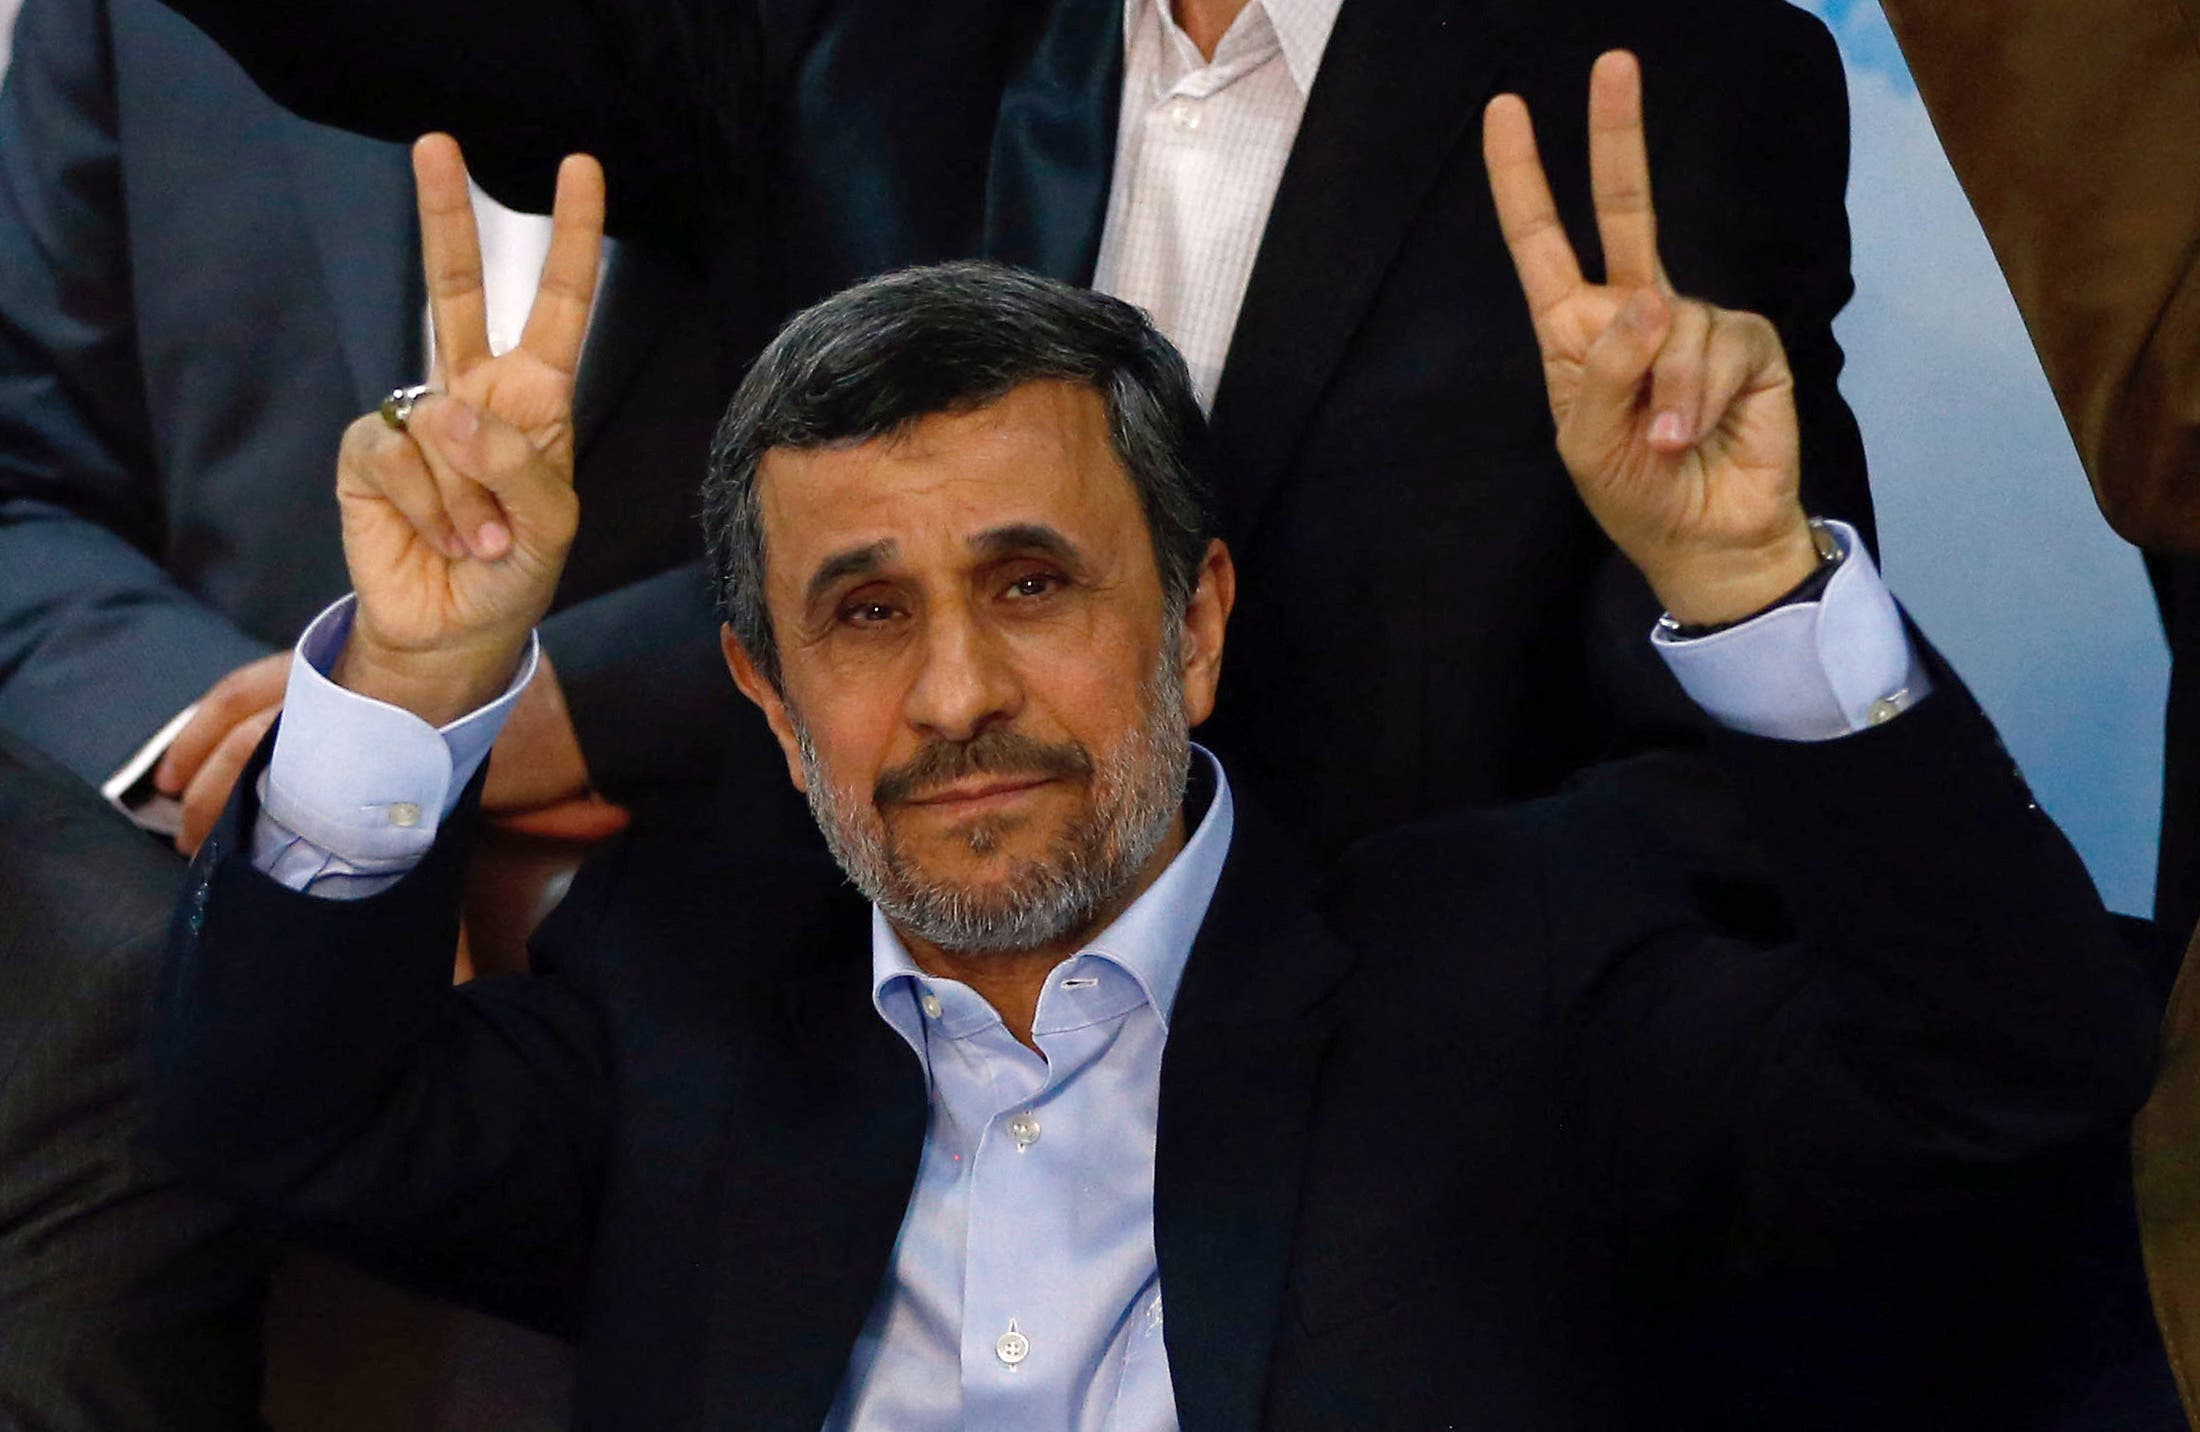 Former Iranian president Mahmoud Ahmadinejad (C) flashes the sign for victory at the Interior Ministry's election headquarters as candidates begin to sign up for the upcoming presidential elections in Tehran on April 12, 2017. Ahmadinejad had previously said he would not stand after being advised not to by supreme leader Ayatollah Ali Khamenei, saying he would instead support his former deputy Hamid Baghaie who also registered on Wednesday. (Stock image)